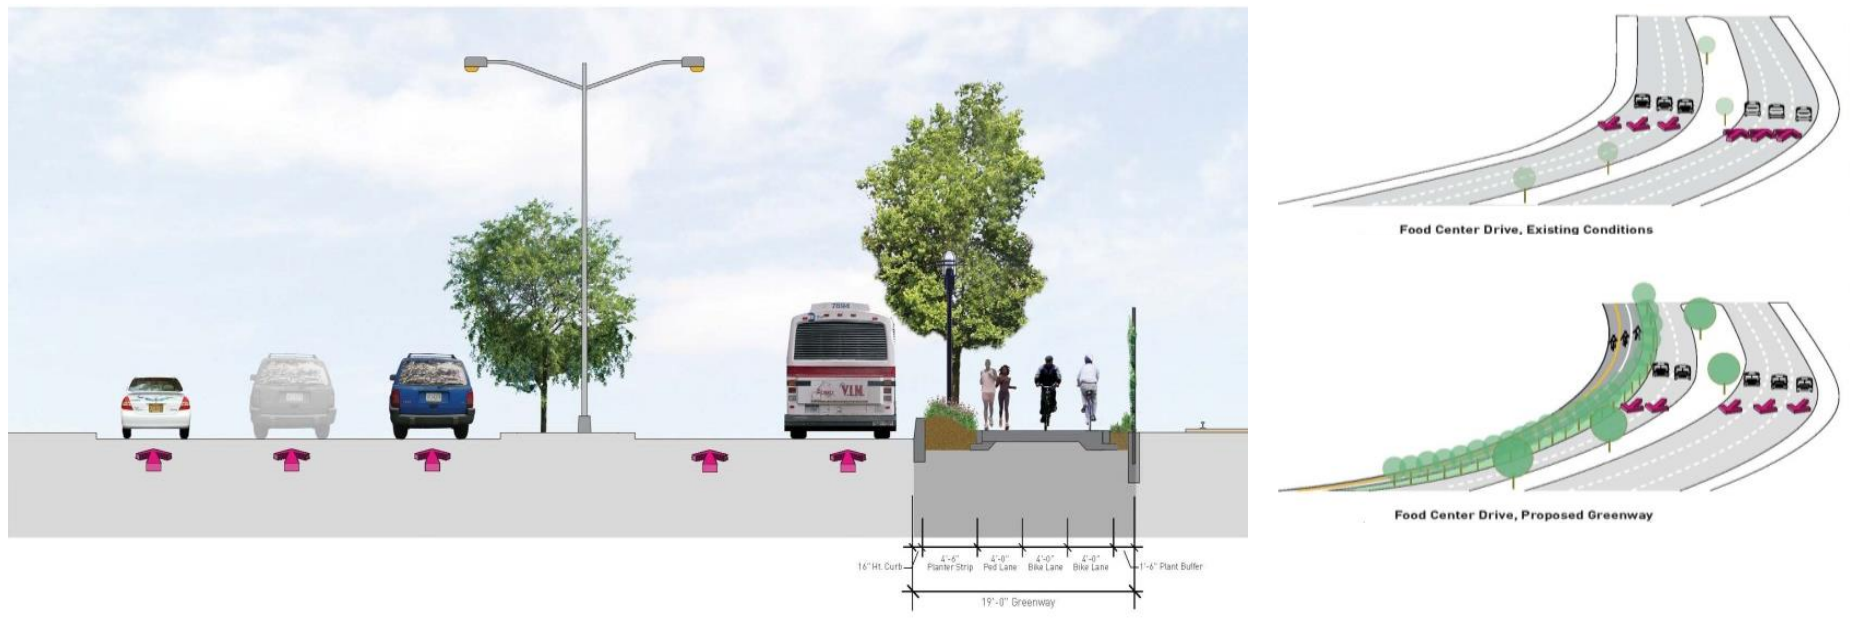 The project removes one lane from motor vehicles to make way for the greenway. Both sides of Food Center Drive are also being converted to one-way operation. Image: NYC EDC